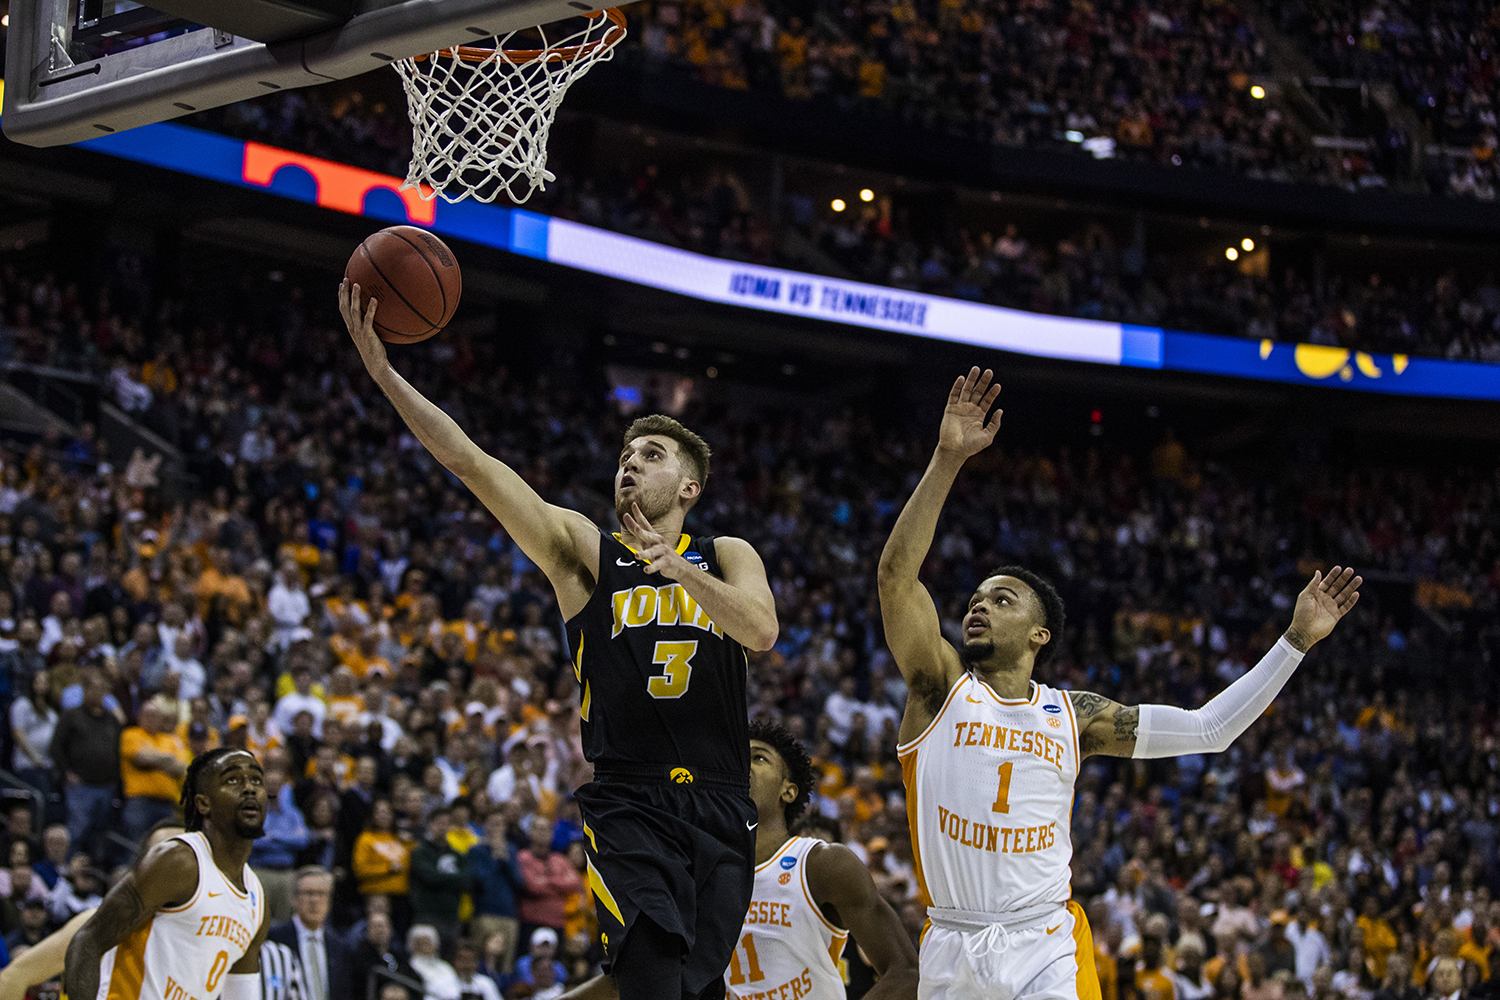 Iowa guard Jordan Bohannon shoots the ball during the NCAA game against Tennessee at Nationwide Arena on Sunday, March 24, 2019. The Volunteers defeated the Hawkeyes 83-77 in overtime.